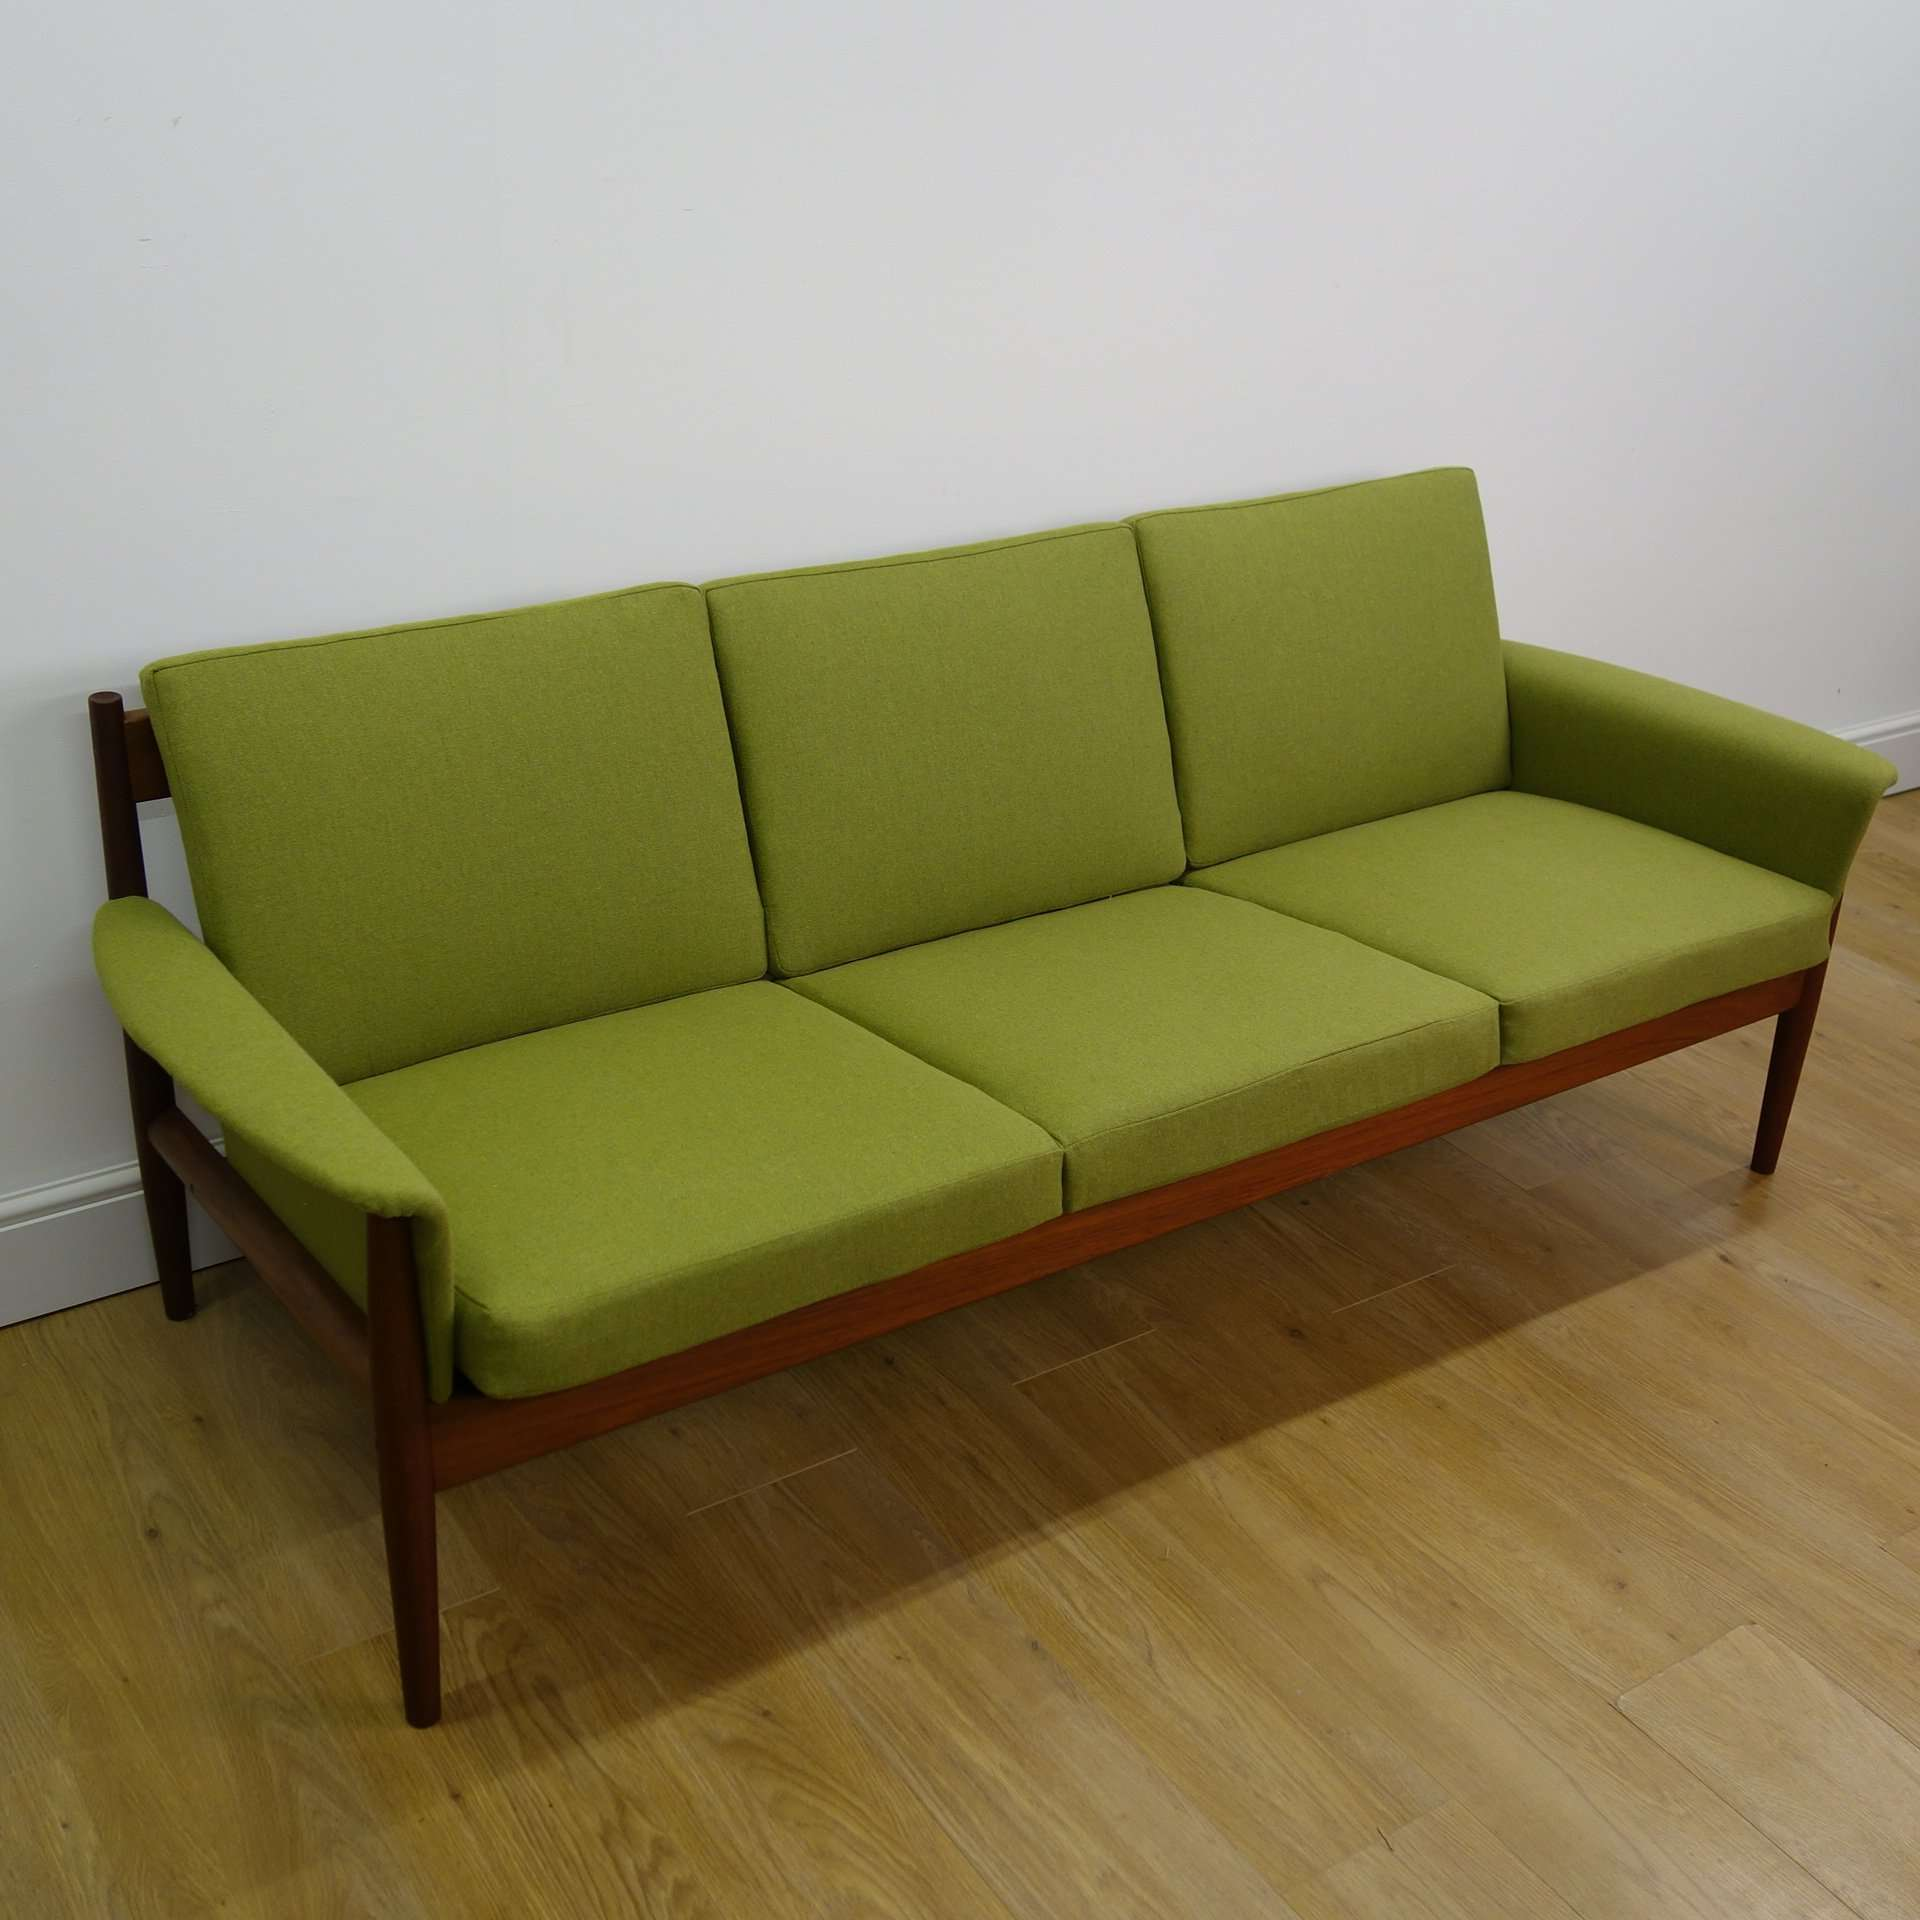 Danish teak sofa by Grete Jalk for France and son - Mark ...